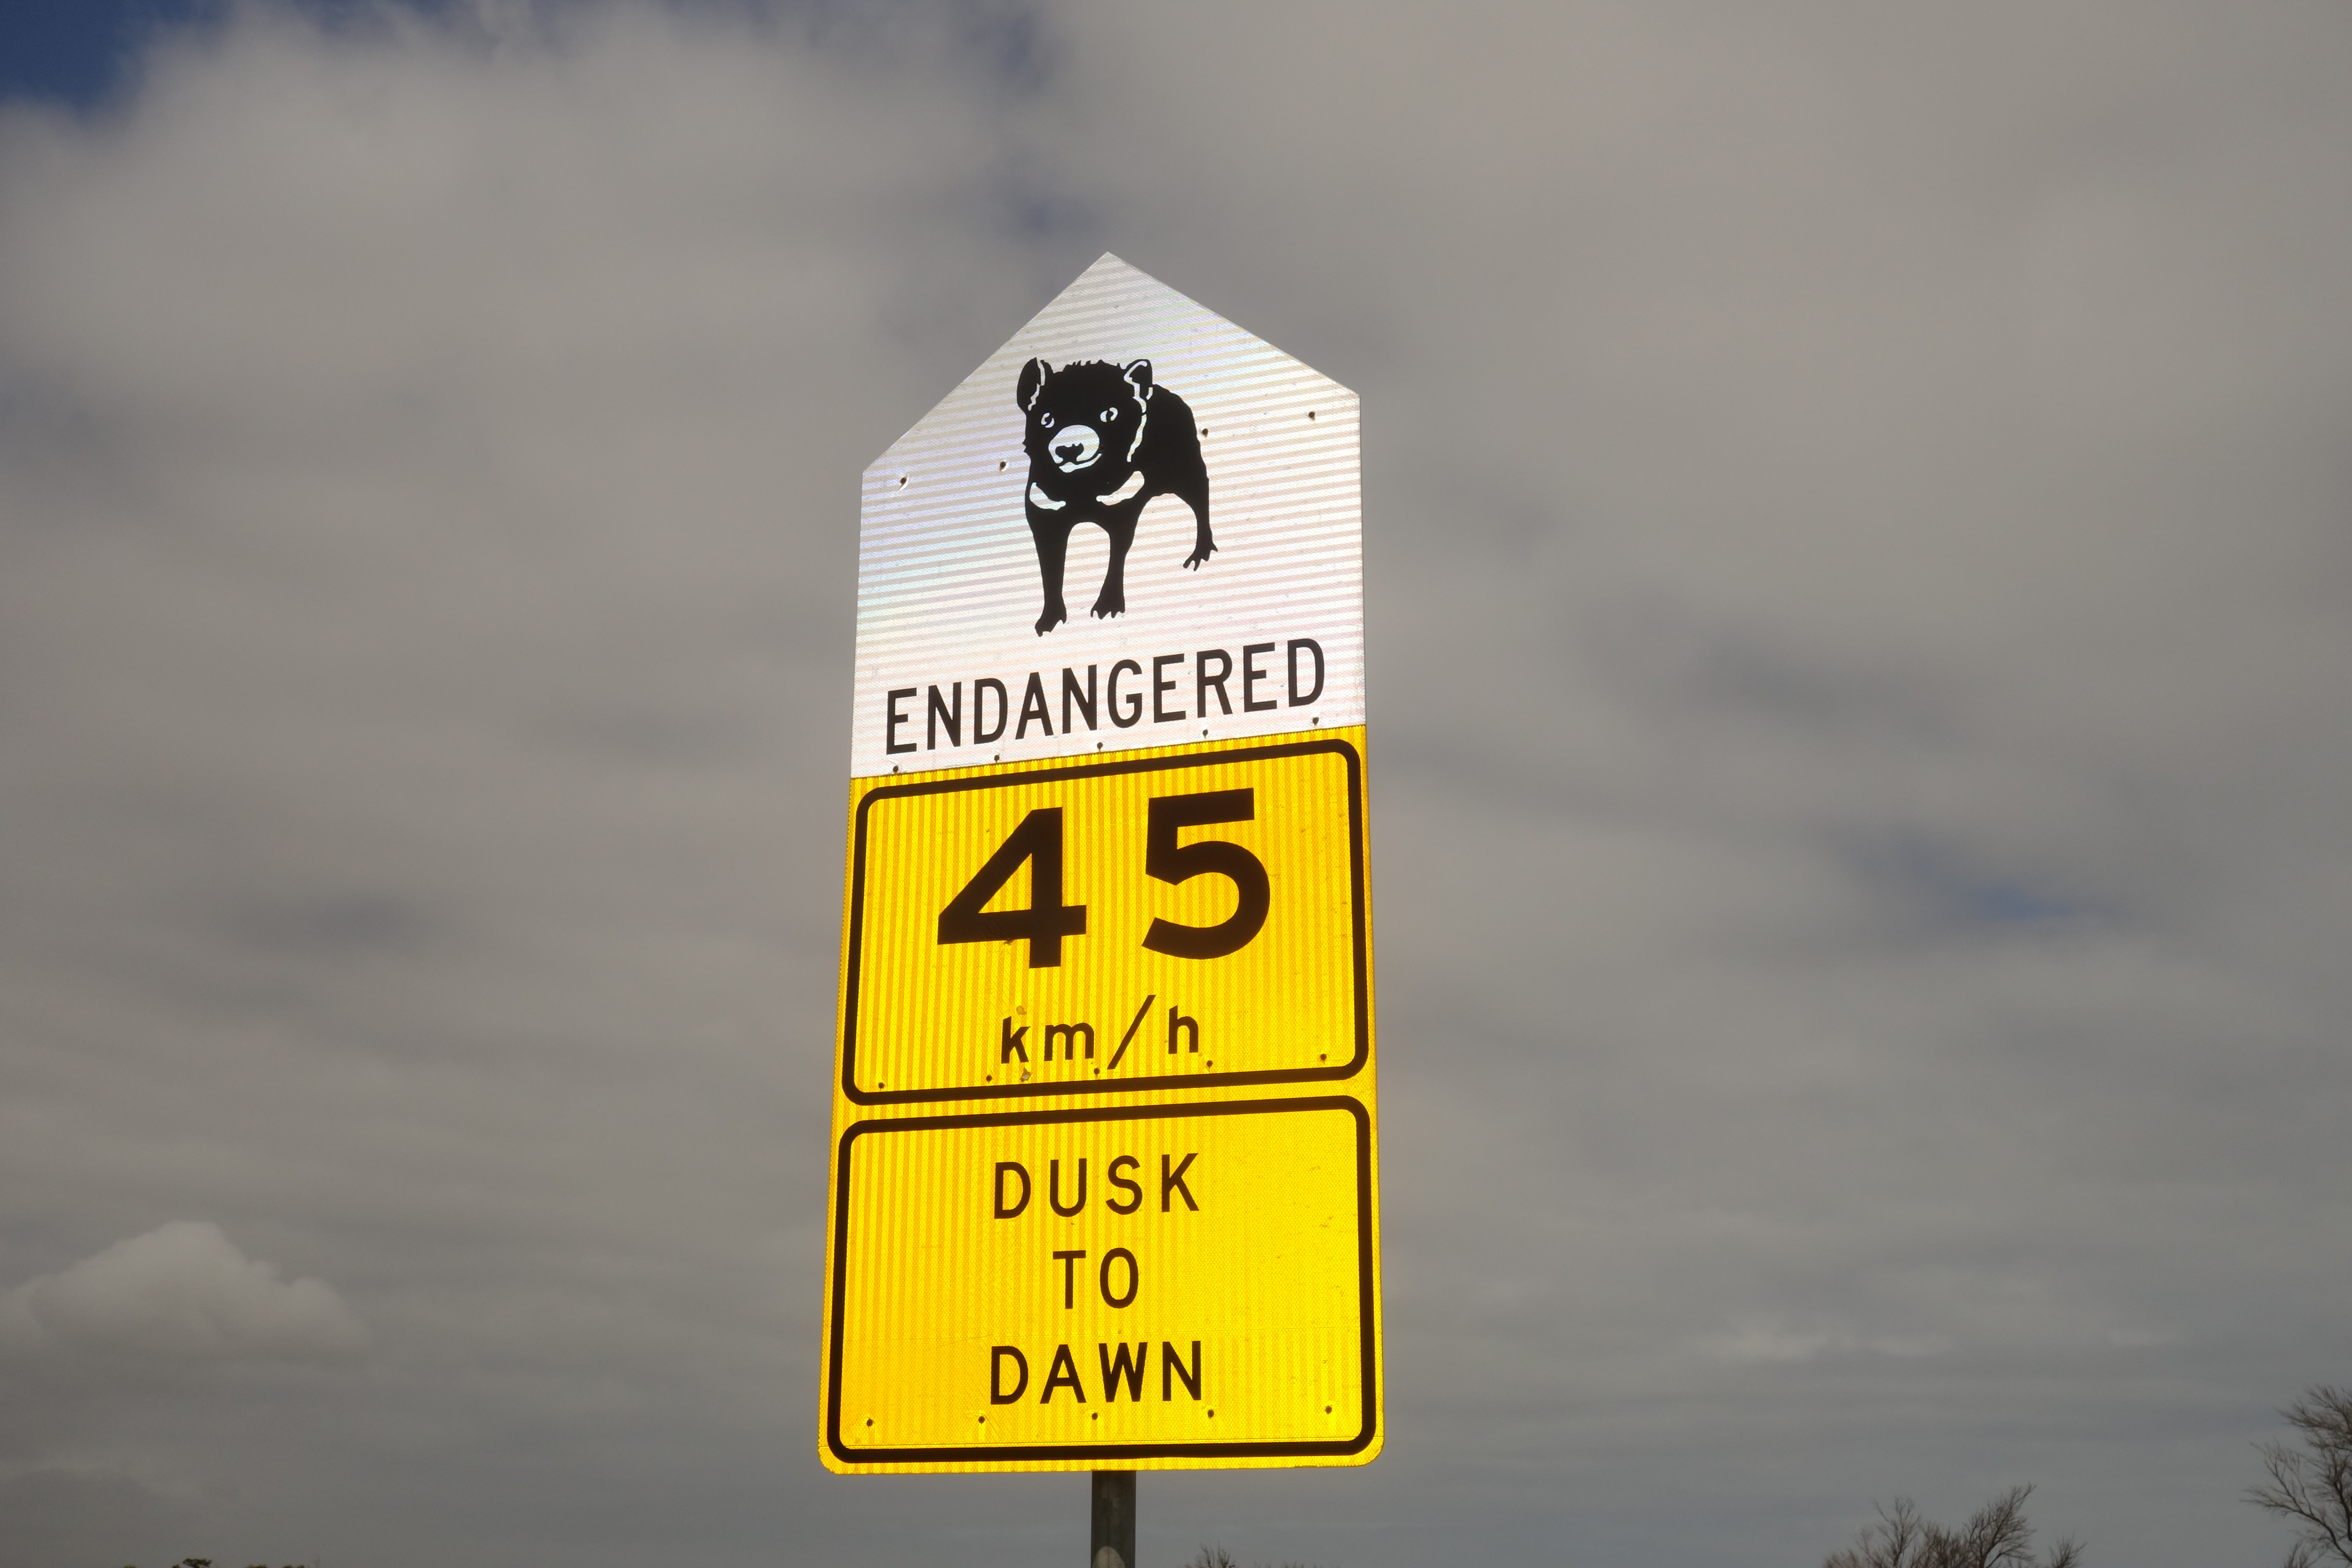 Road sign with picture of Tasmanian devil, endangered, 45 km/h speed limit dusk to dawn